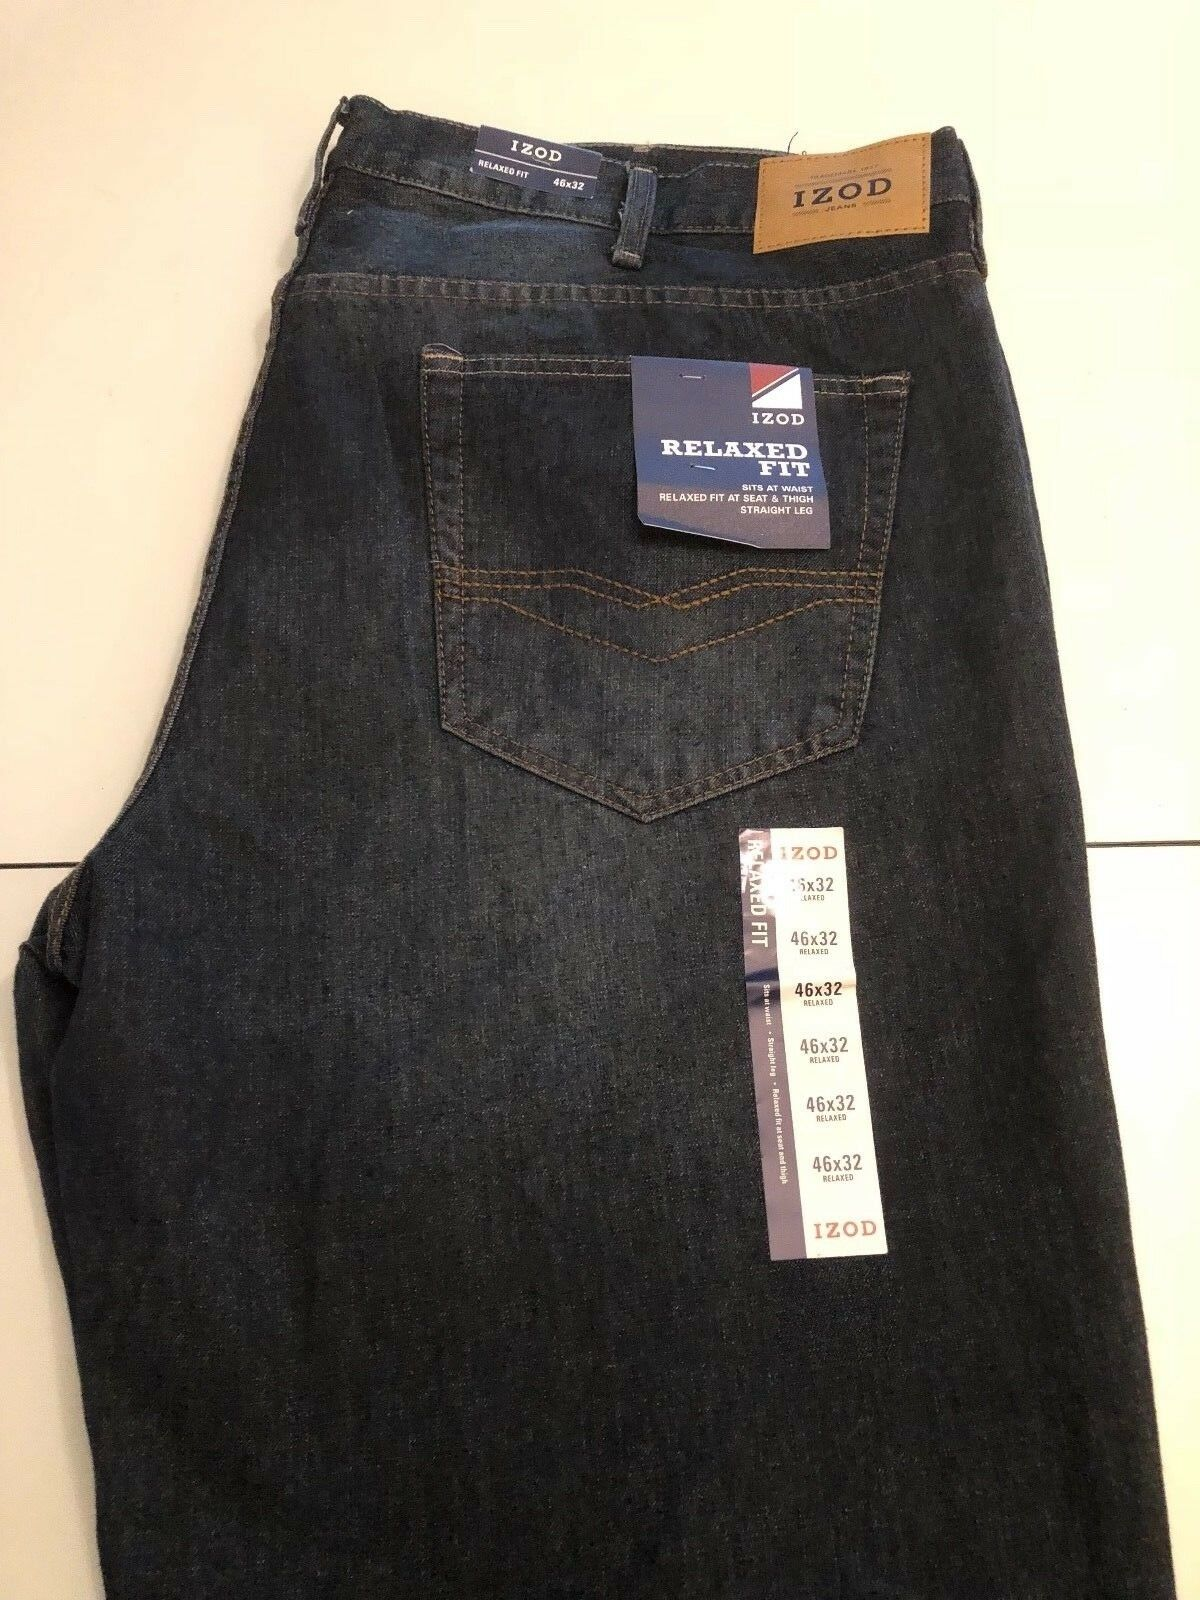 NWT Izod Relaxed Fit Meadow bluee Jean Size 46W x 30L